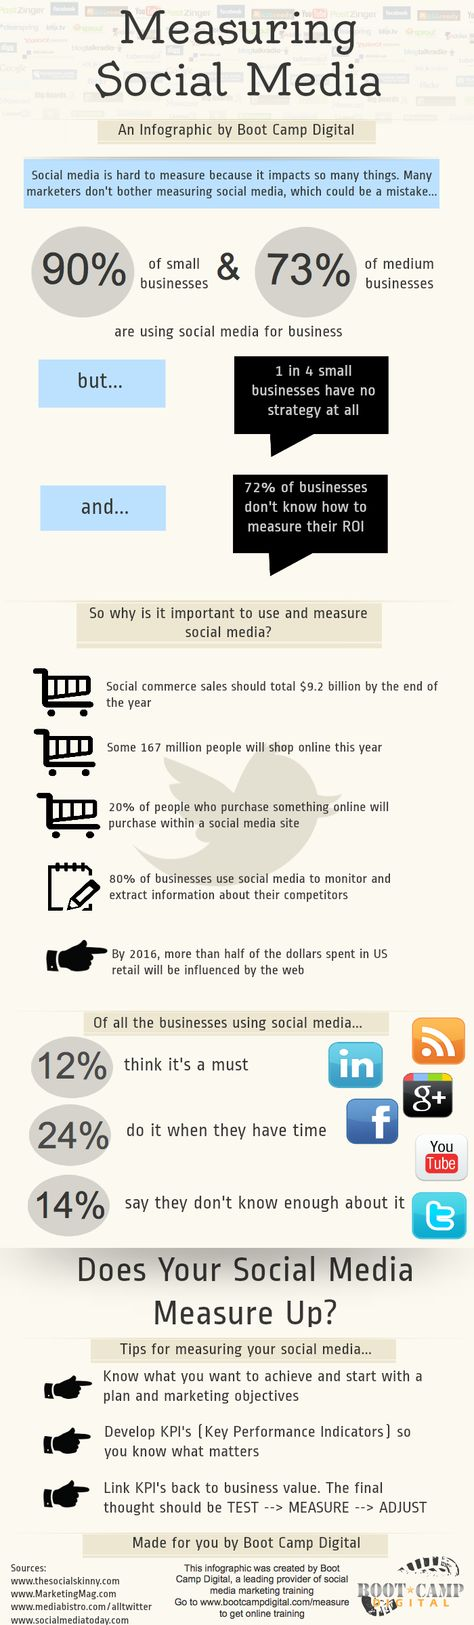 Measuring Social Media - an Infographic by Boot Camp Digital